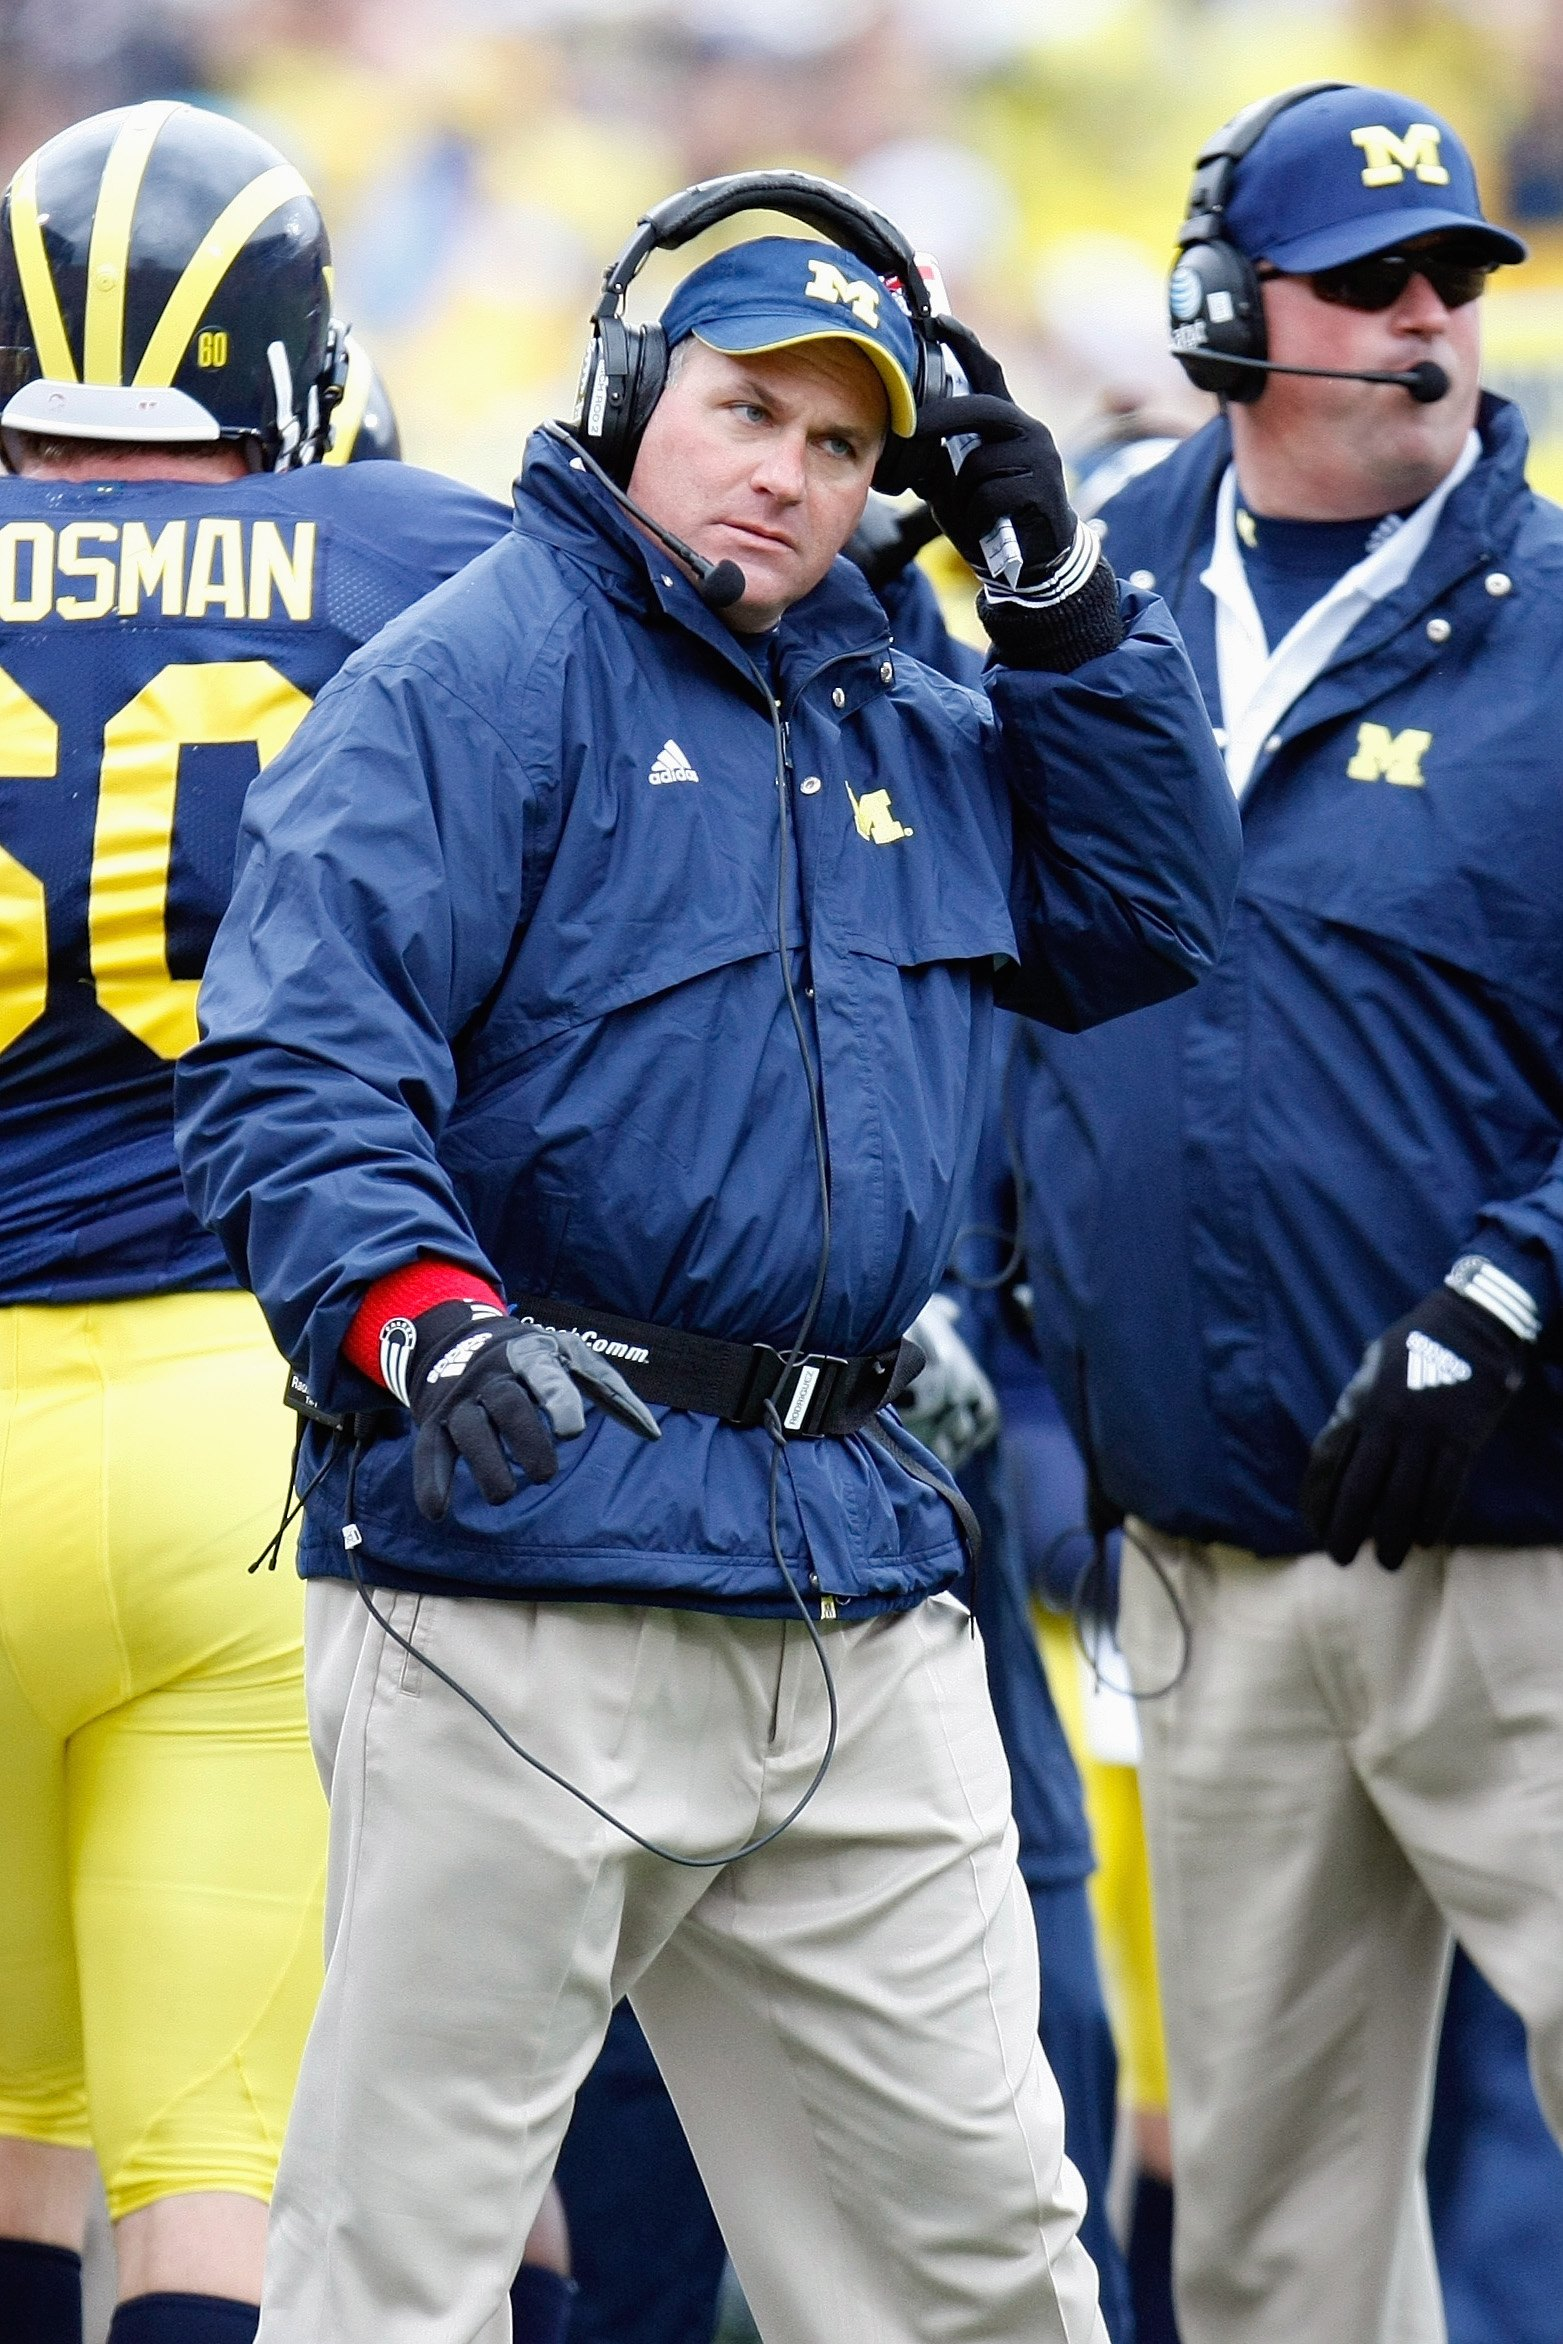 ANN ARBOR, MI - OCTOBER 24:  Head coach Rich Rodriguez of the Michigan Wolverines looks on during the game against the Penn State Nittany Lions on October 24, 2009 at Michigan Stadium in Ann Arbor, Michigan. (Photo by  Gregory Shamus/Getty Images)